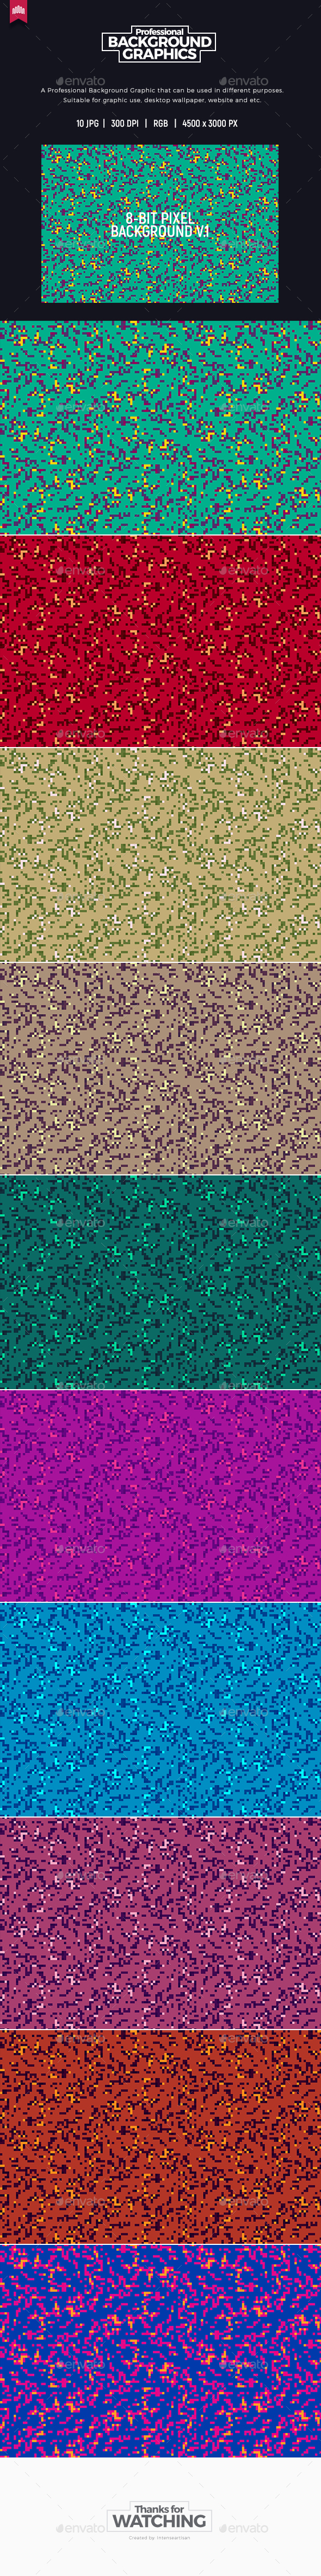 8-Bit Pixel Background V.1 - Miscellaneous Backgrounds